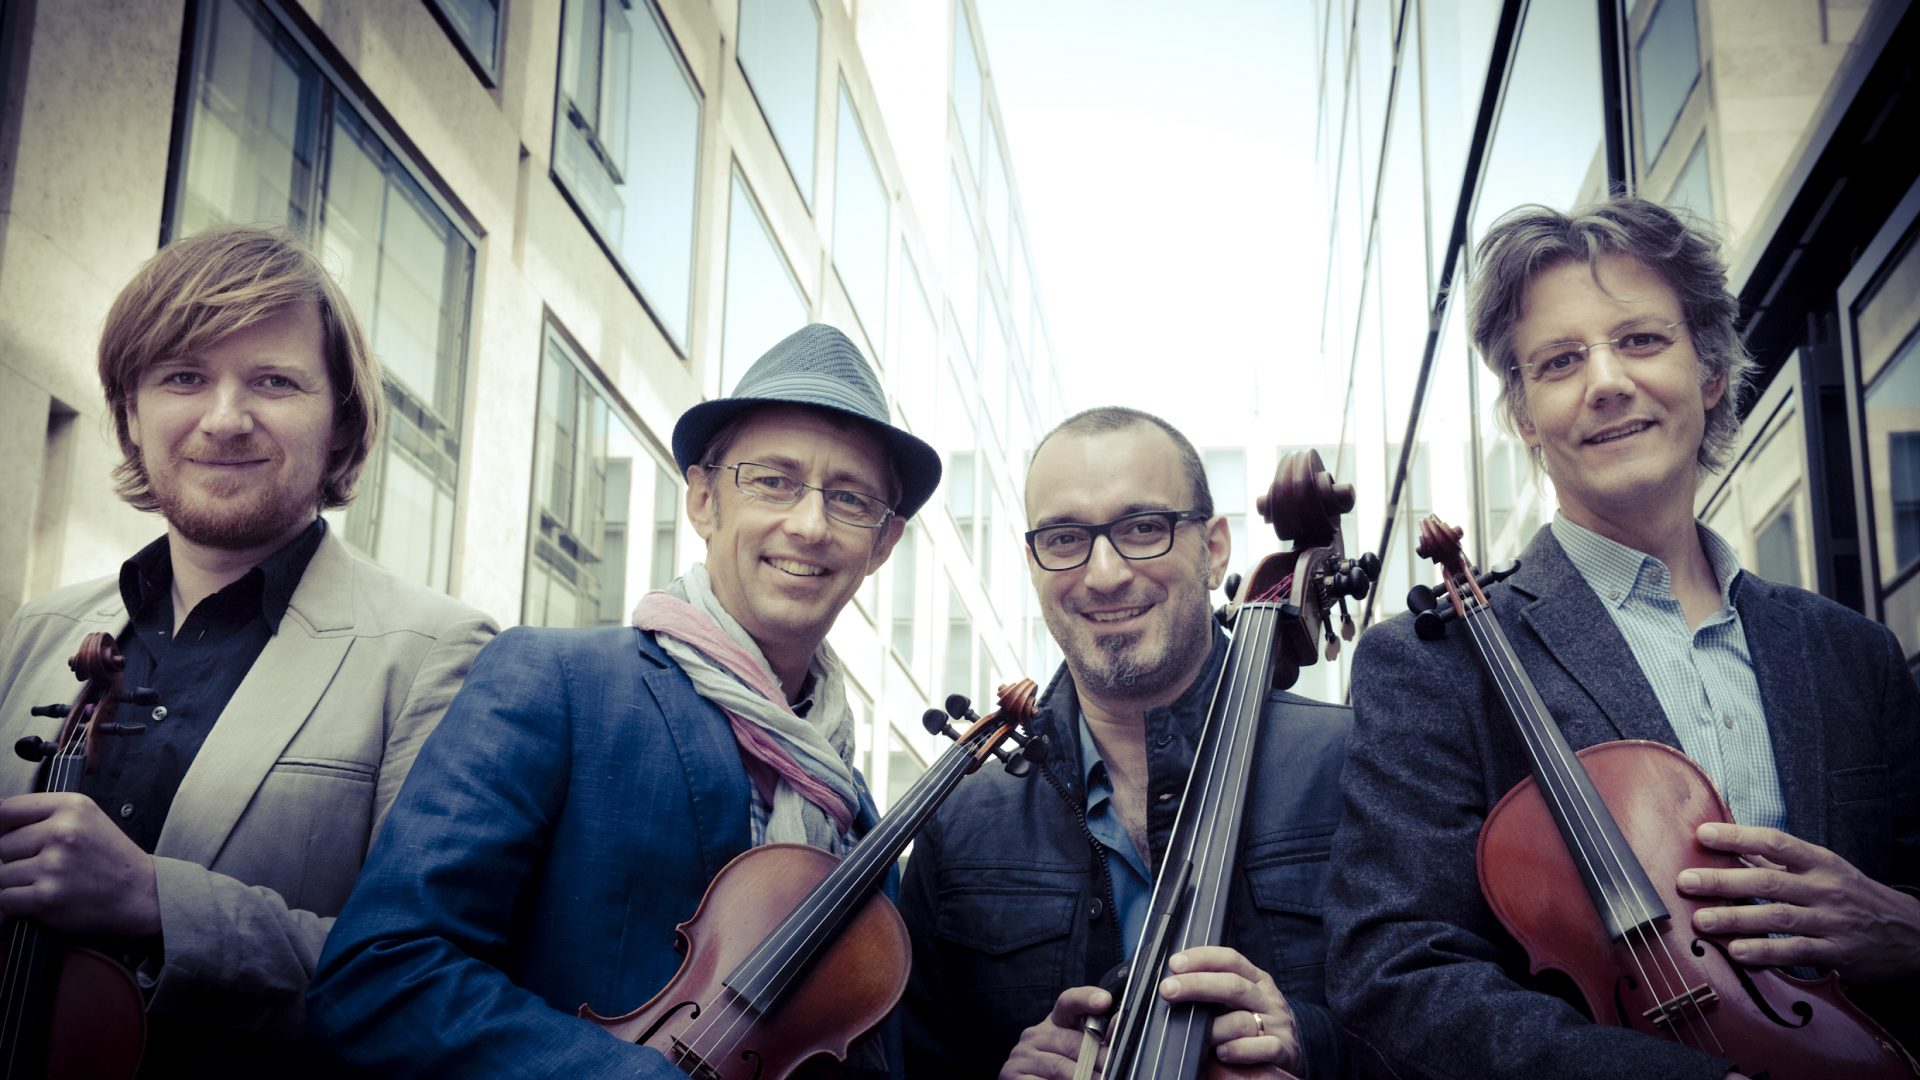 CPO_Helvetic Fiddlers1